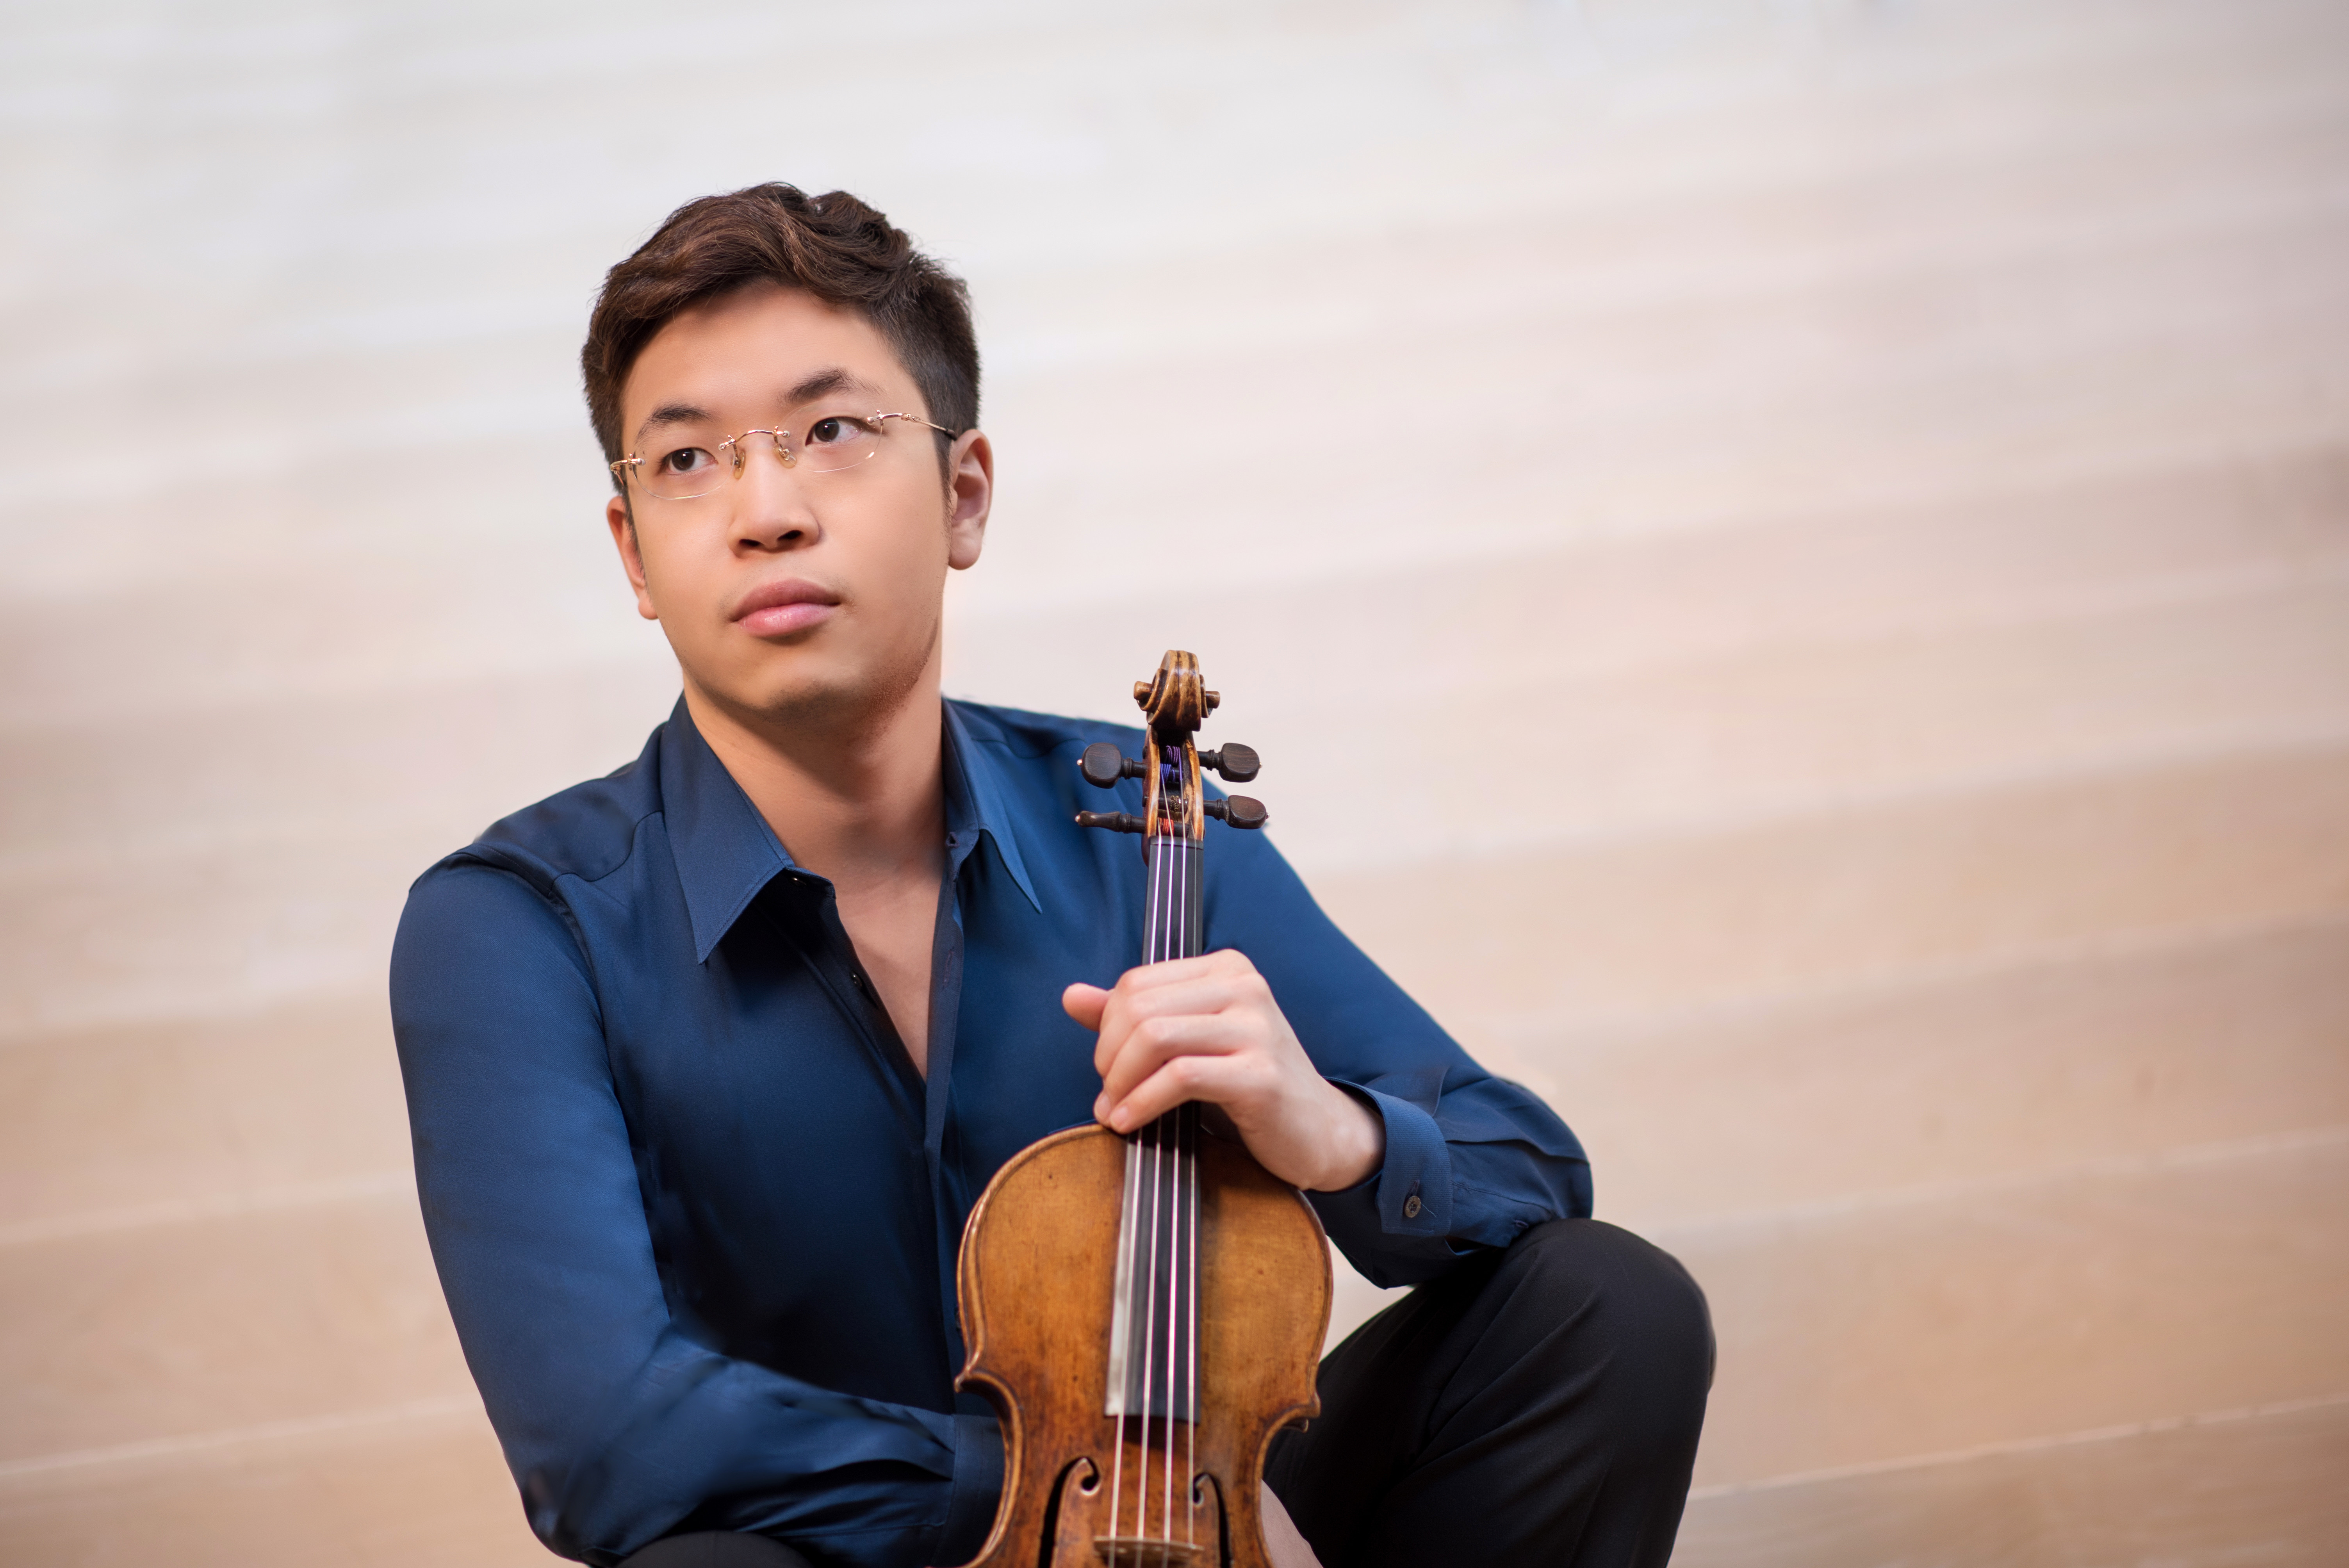 Violinist Paul Huang to Play Bruch's 'Scottish Fantasy' with